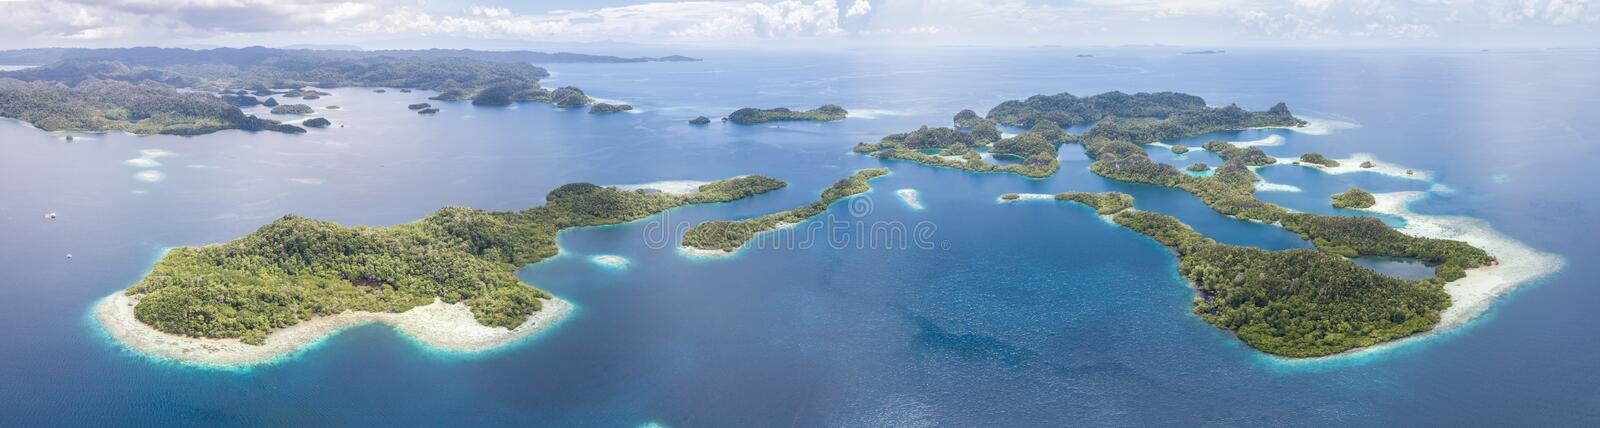 Aerial View of Tropical Islands in Raja Ampat. The beautiful tropical islands of Pef are surrounded by calm seas in the equatorial seascape of Raja Ampat stock image